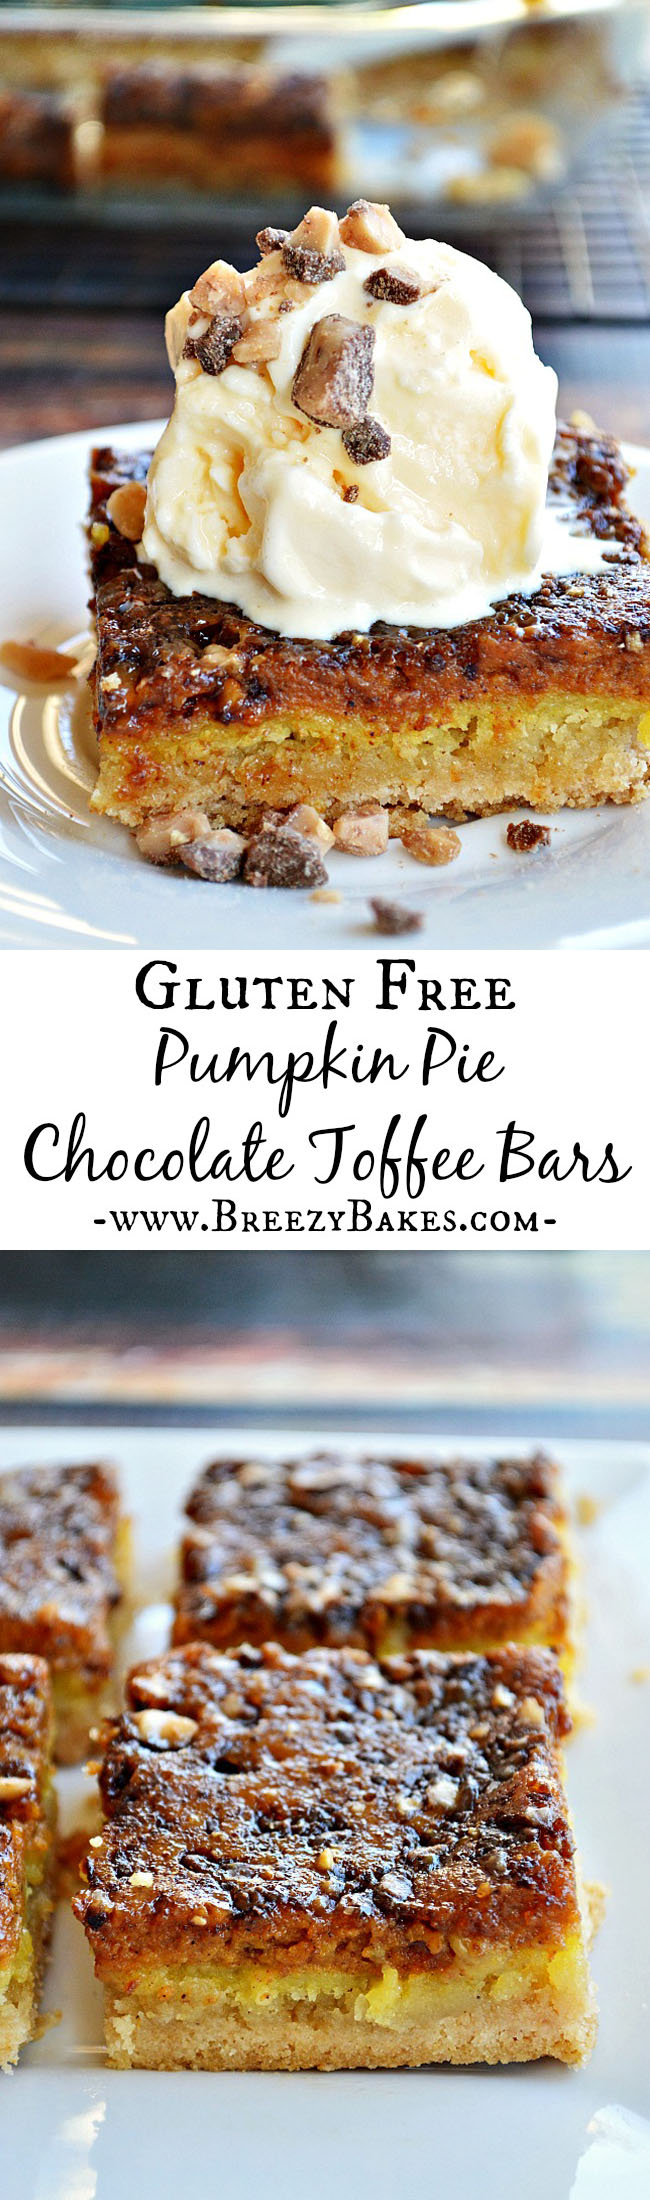 These Gluten Free Pumpkin Pie Toffee Bars are the perfect substitution for traditional pumpkinpie. Layers of cakey shortbread, a smooth pumpkin filling, and a sprinkle of Heath toffee bits make for a yummy fall treat!